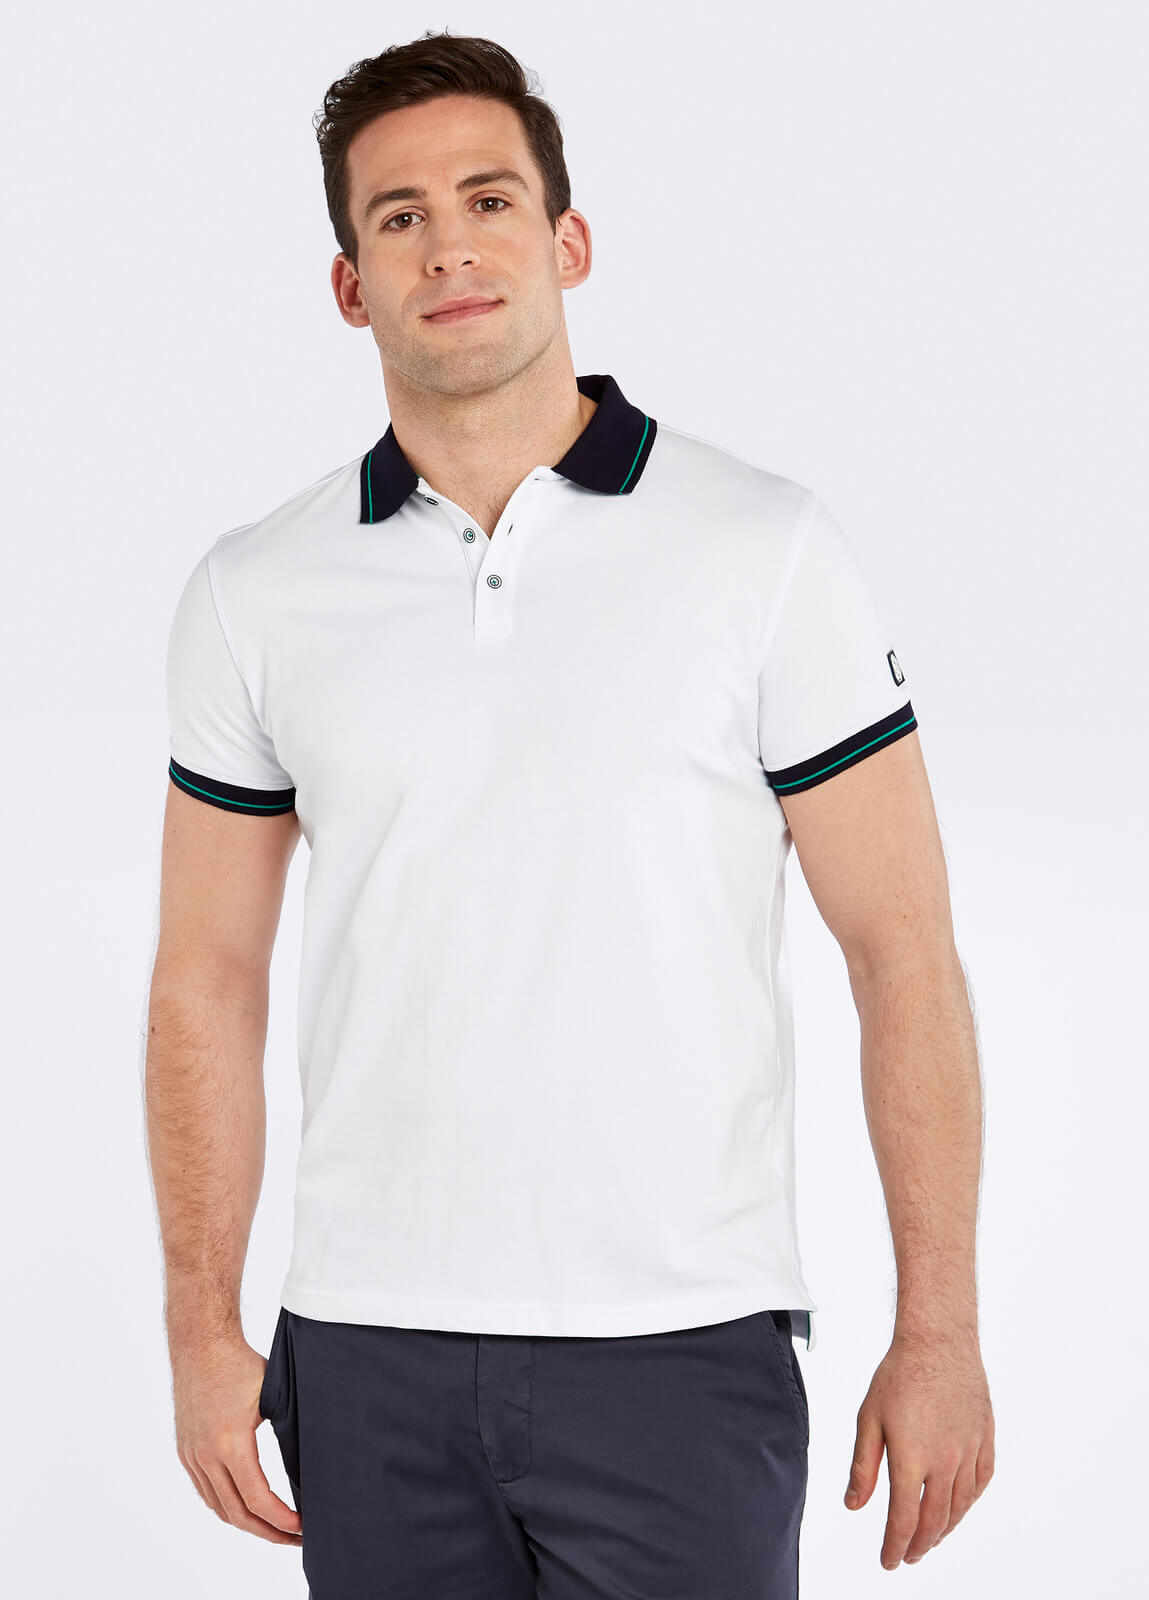 Grangeford_Polo_Shirt_White_on_model